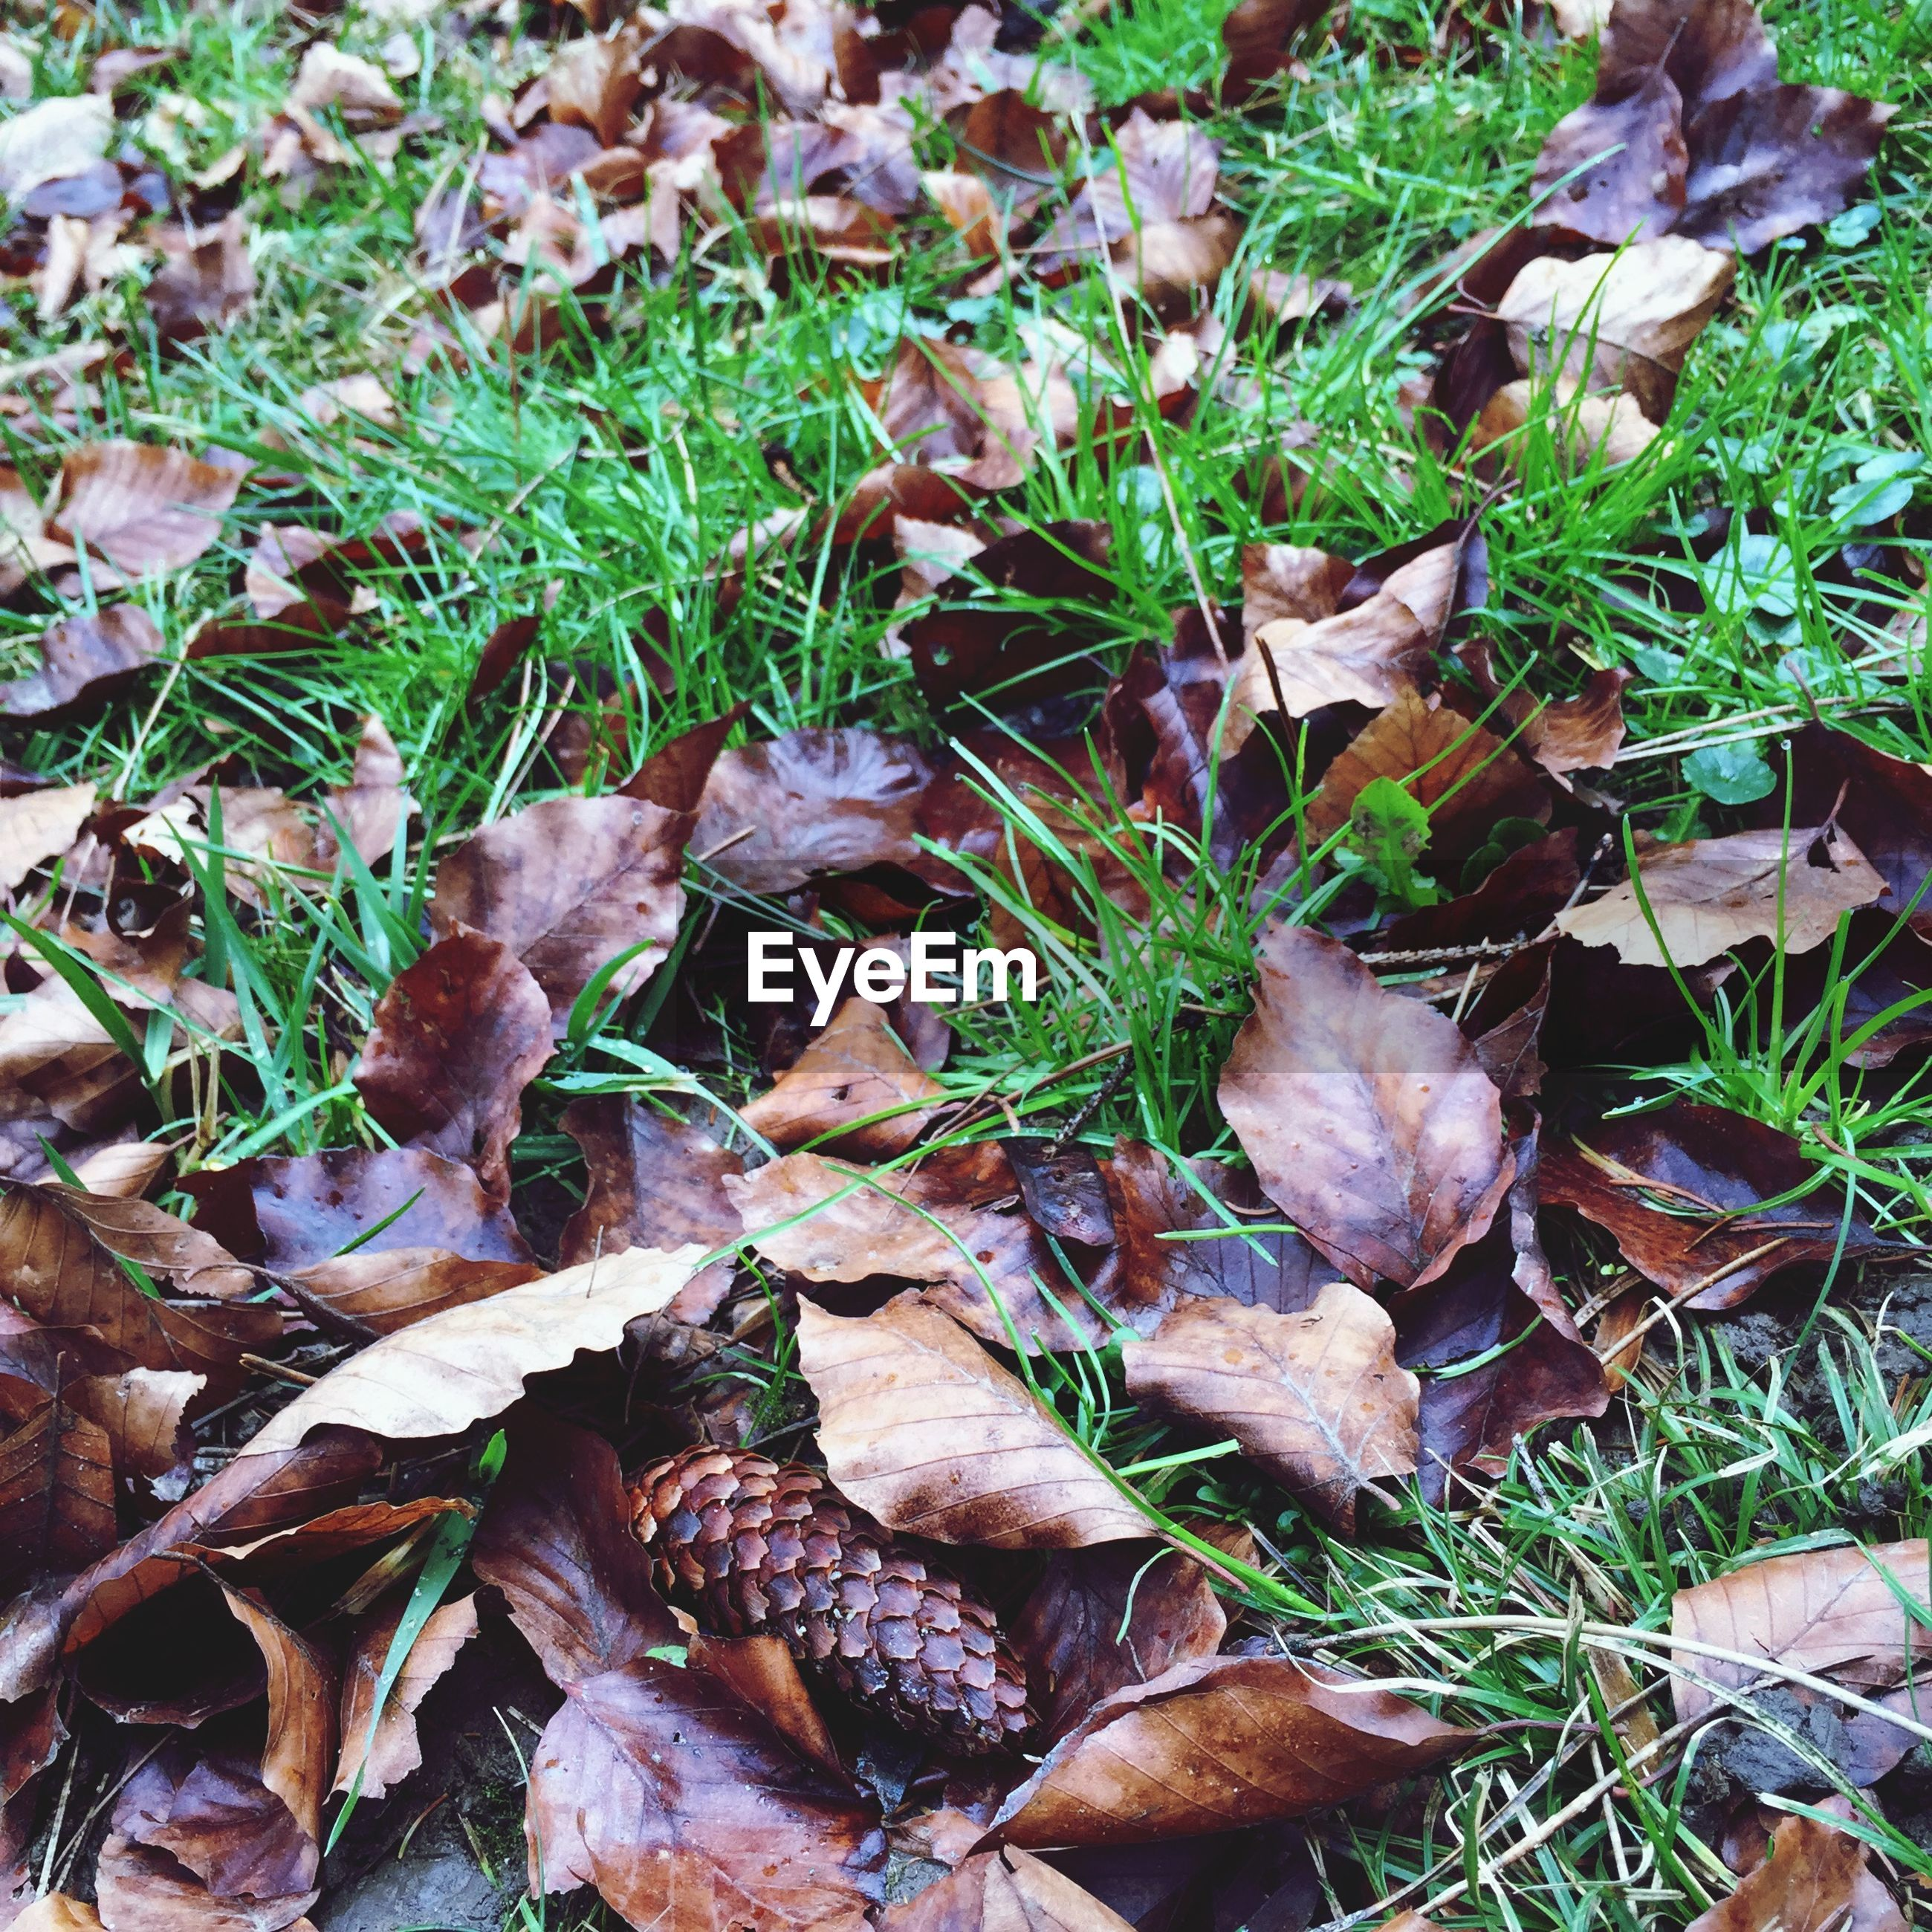 High angle view of pine cone and leaves on grassy field